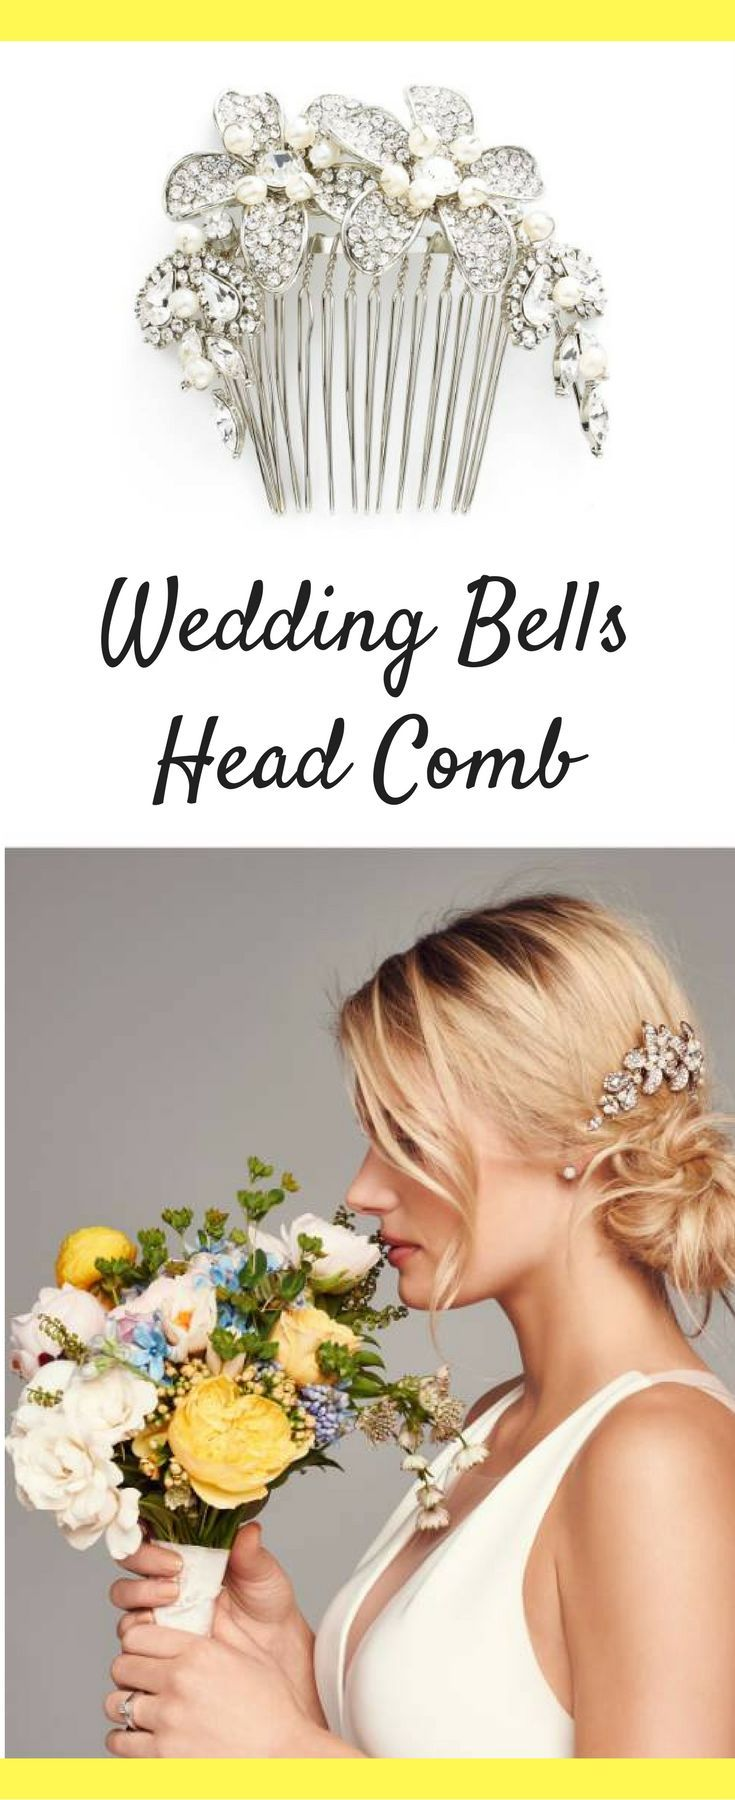 This is such a beautiful head comb for weddings or prom!  Create beautiful hairstyles with this gorgeous head comb.  #ad #haircomb #haircomesthebride #wedding #weddingday #weddingideas #weddinghair #weddinghairstyle #weddingheadpiece